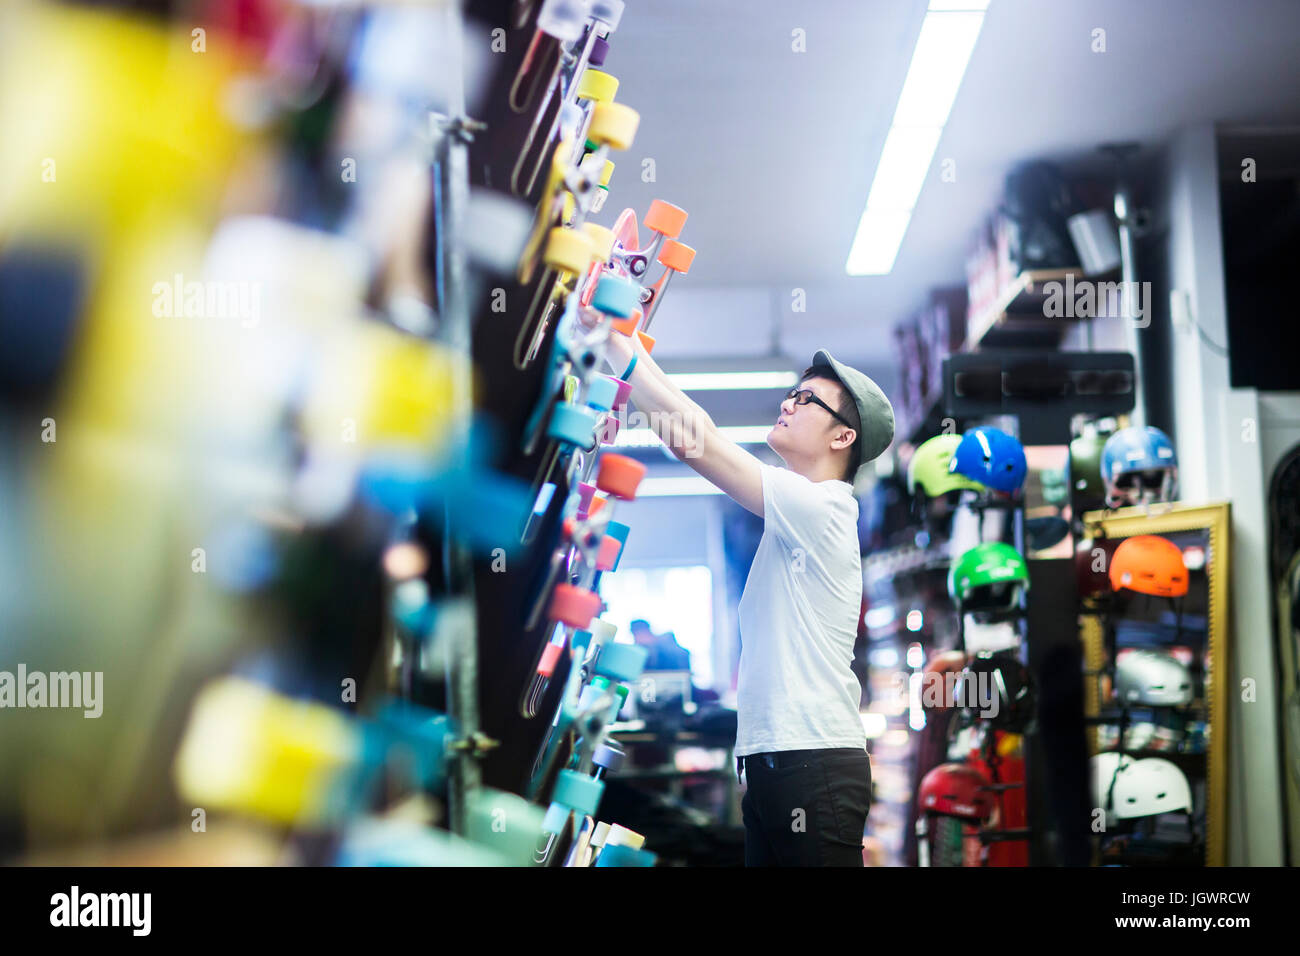 Young male skateboarder removing skateboard from wall in skateboard shop - Stock Image